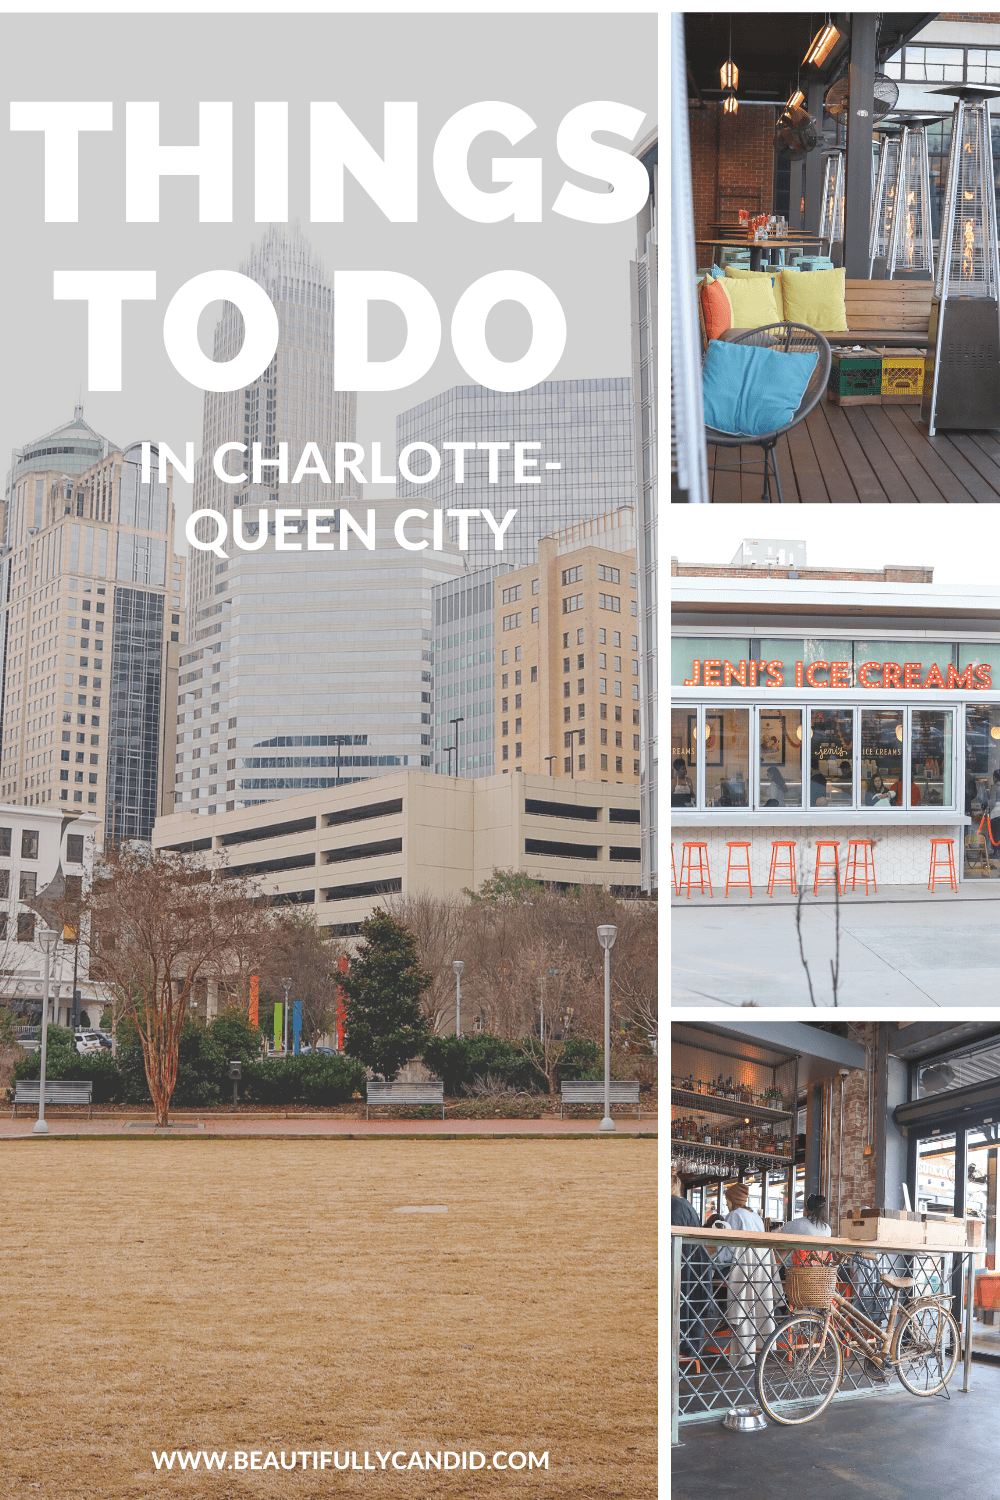 Charlotte-The-Queen-City-Things-To-Do